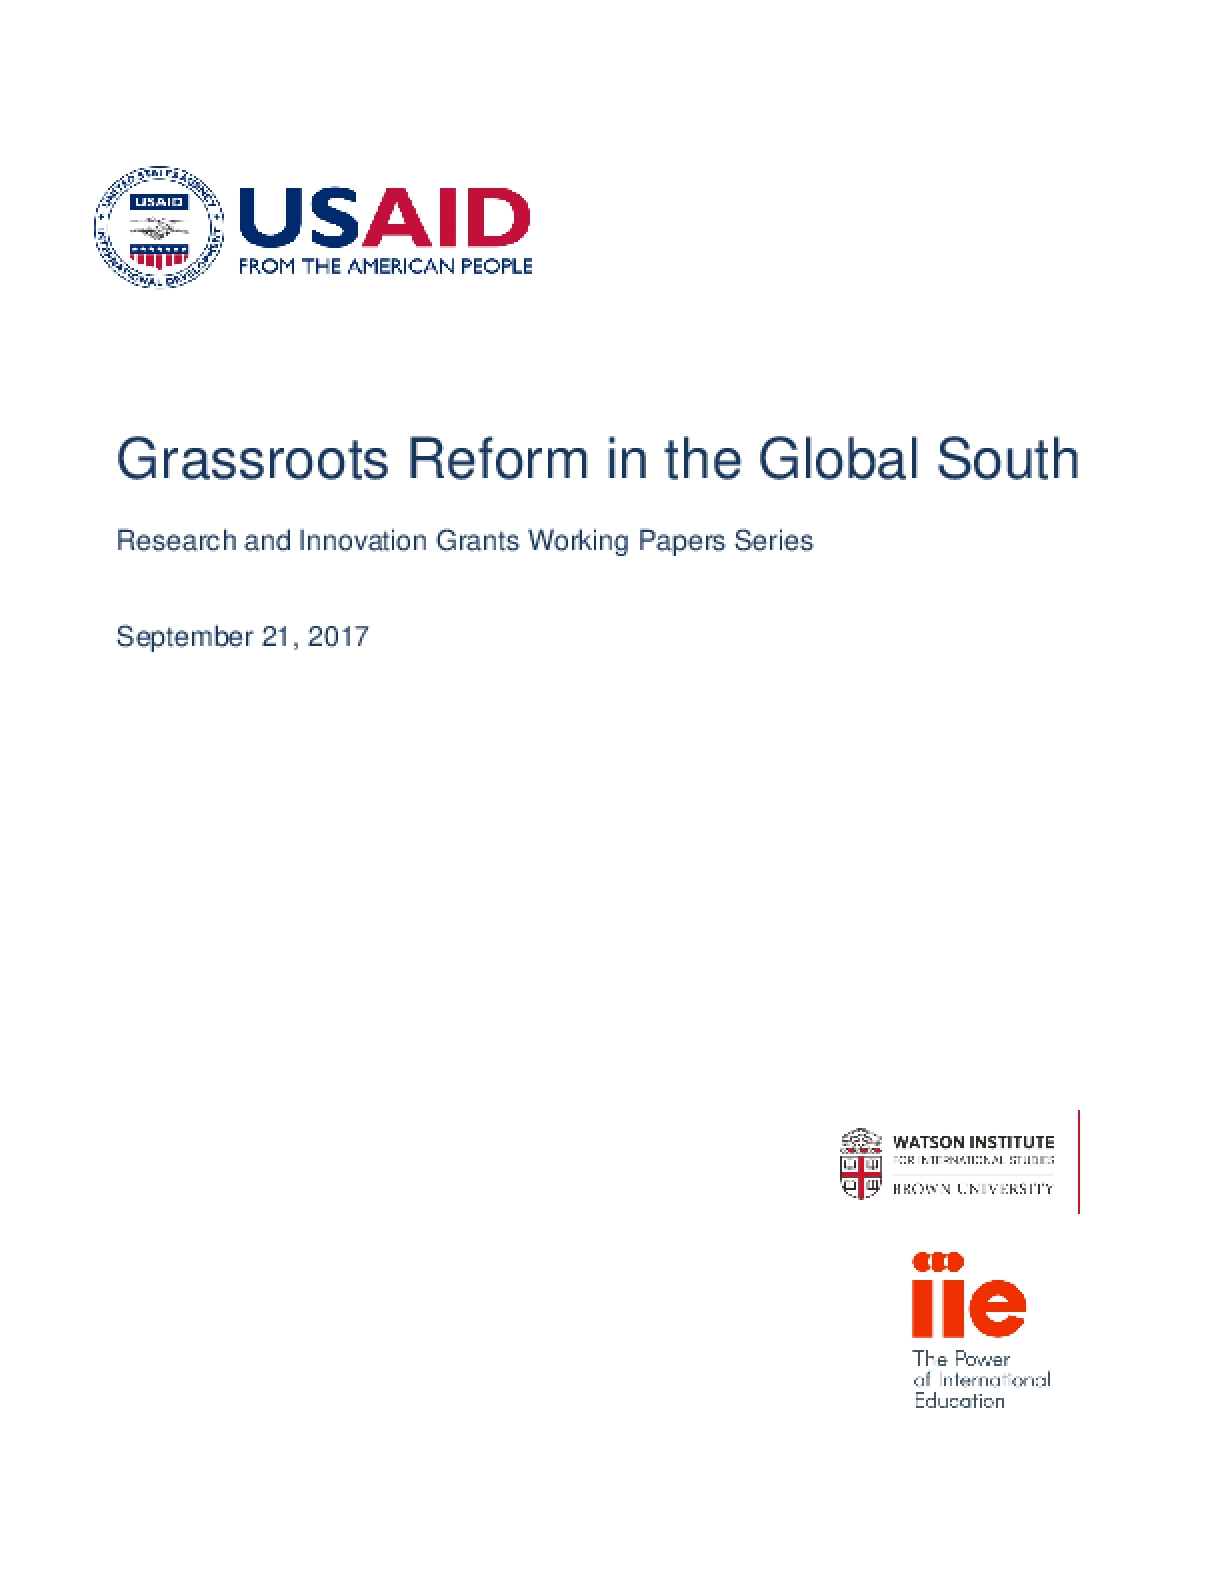 Grassroots Reform in the Global South (2017)